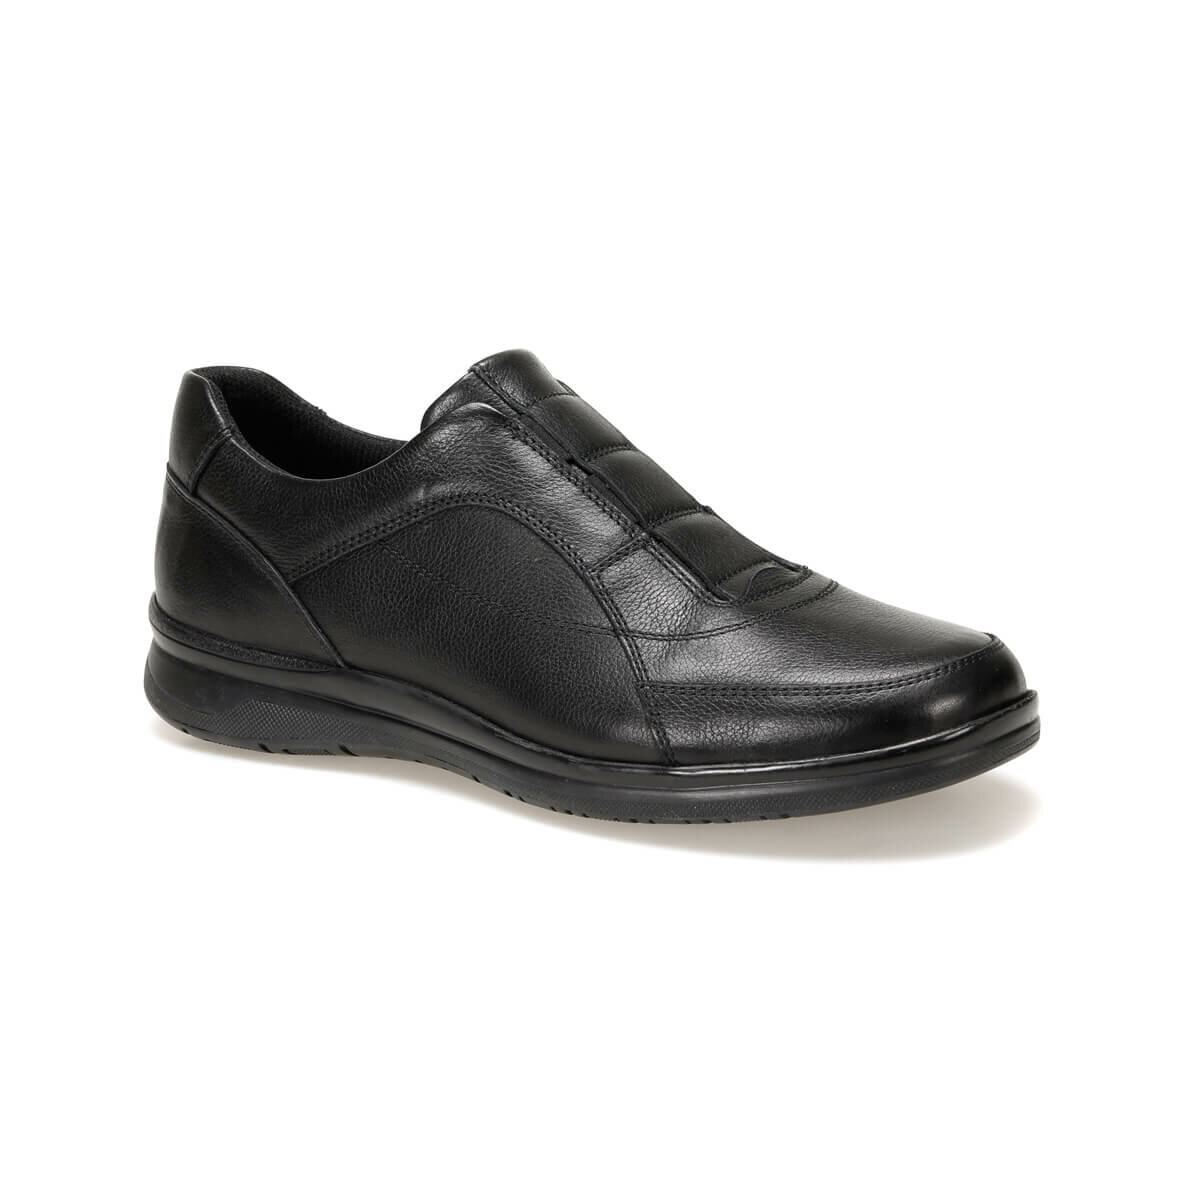 FLO 50980-4 Black Male Shoes Flogart